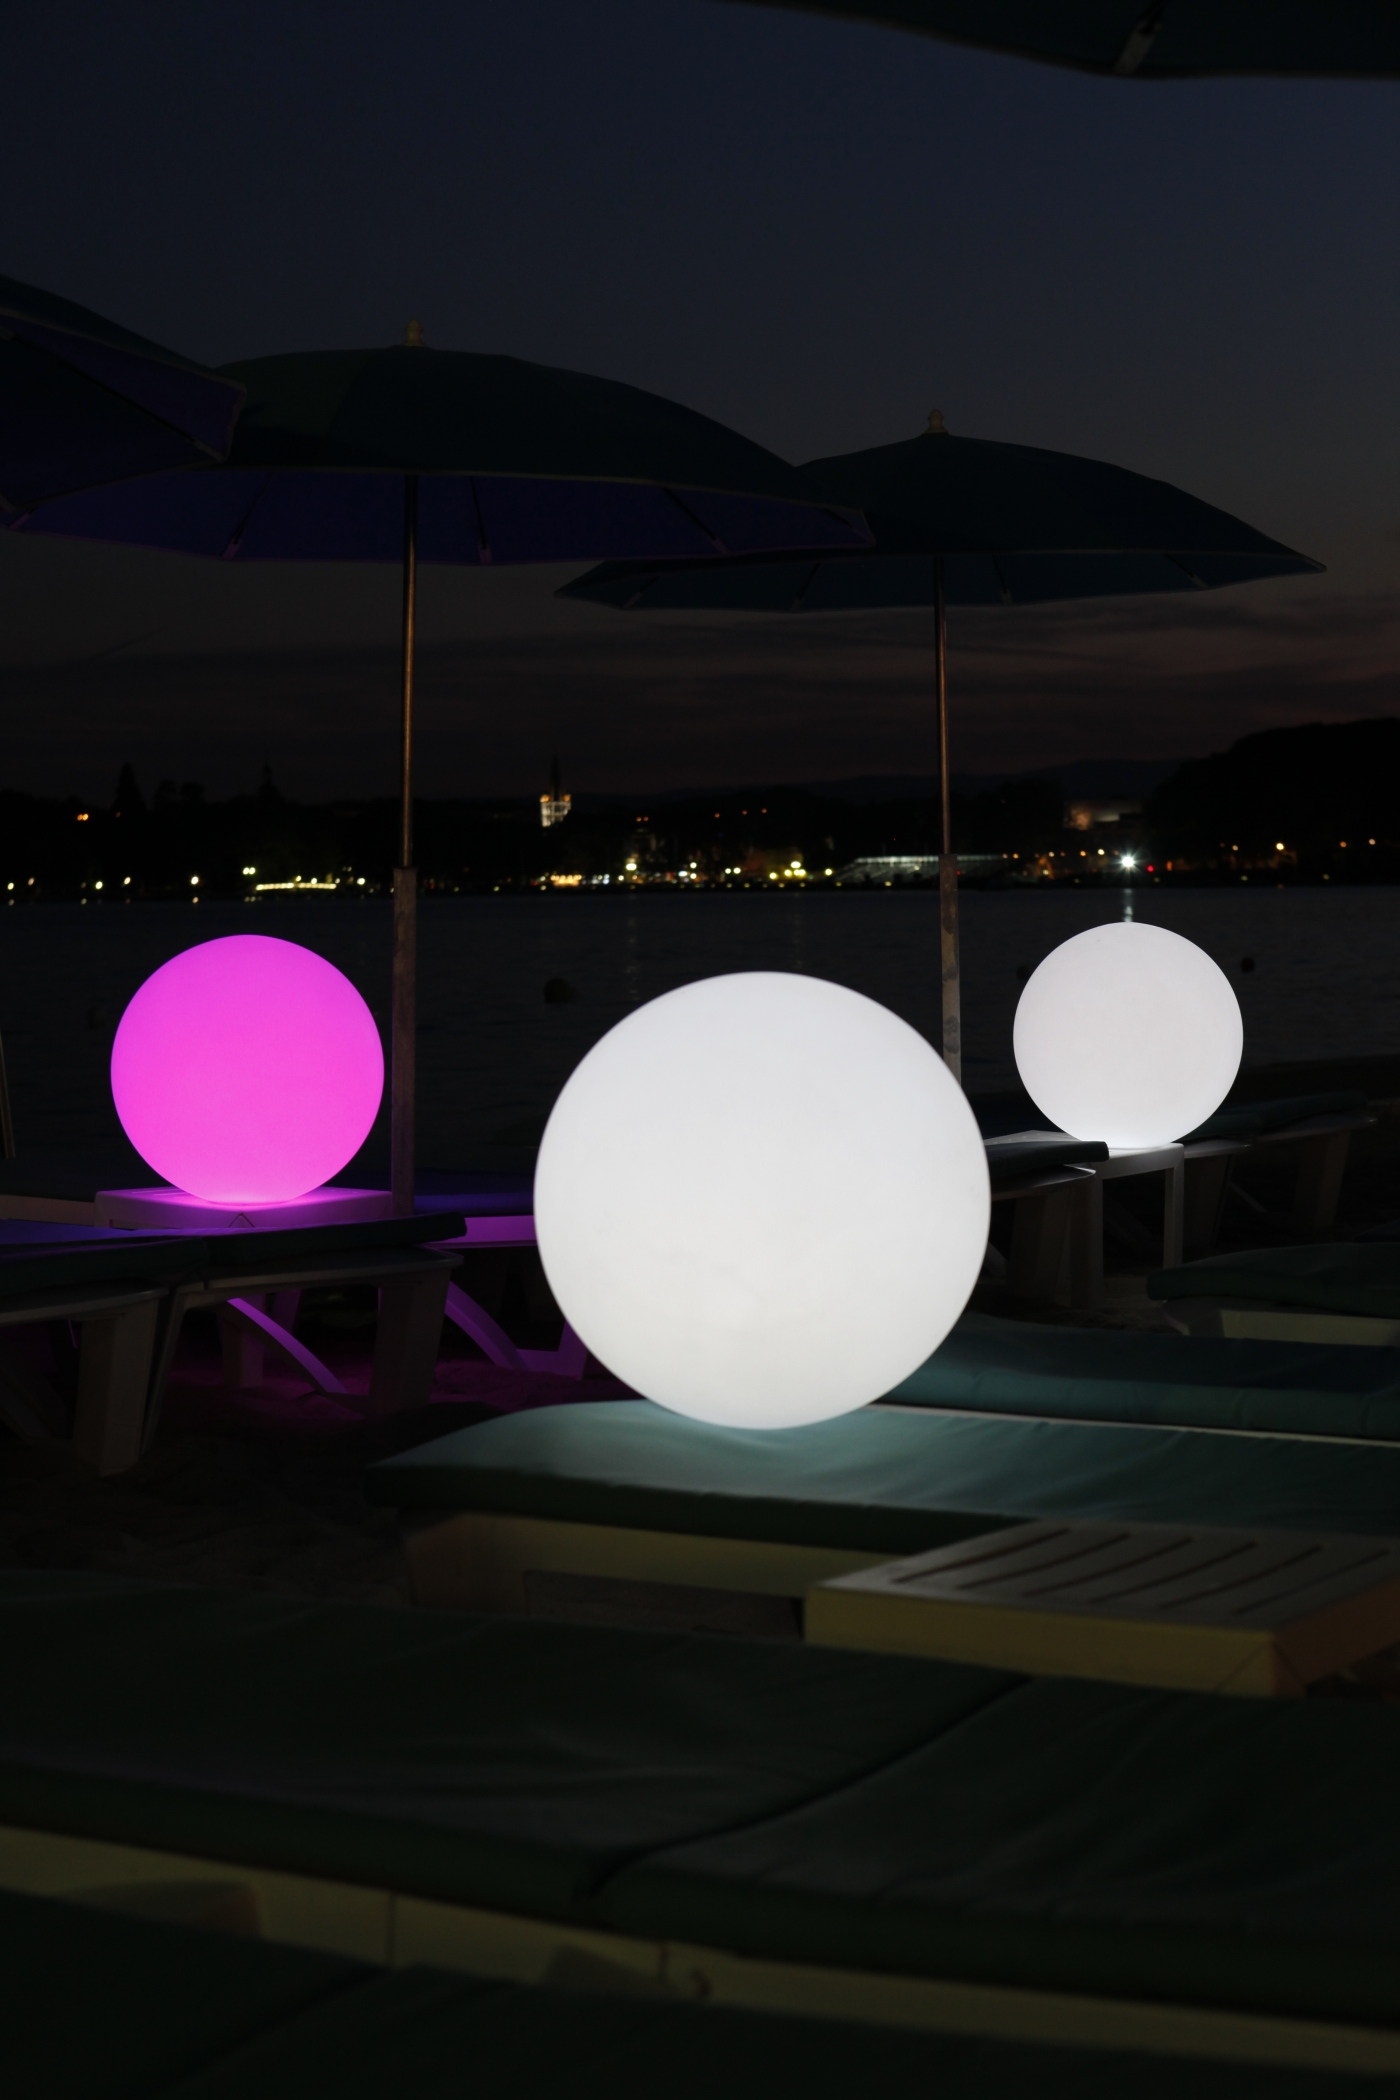 BALL-GLOBE-PEARL LED Lampe Smart & Green bei VAN VUGHT Interiors in Berlin & Glienicke